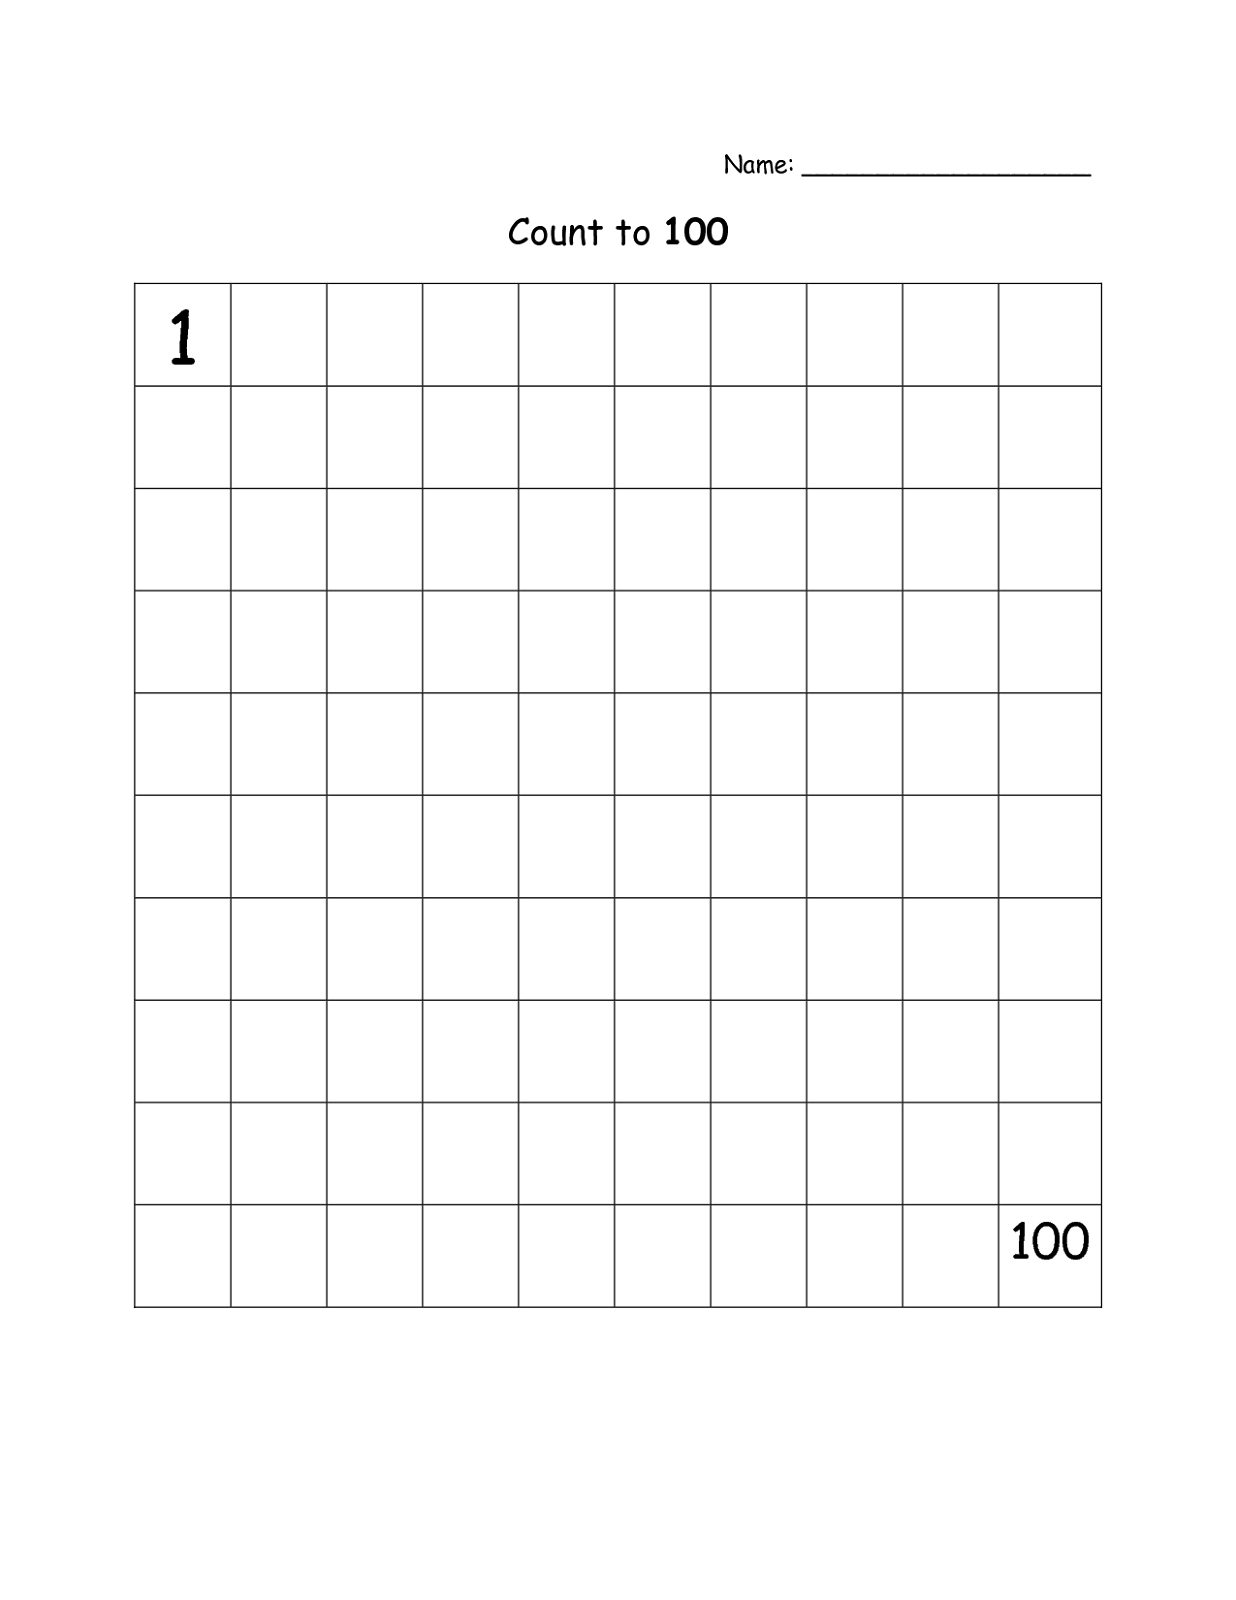 image about Blank Number Line Printable named Printable Blank Selection Charts 1-100 Game Shelter